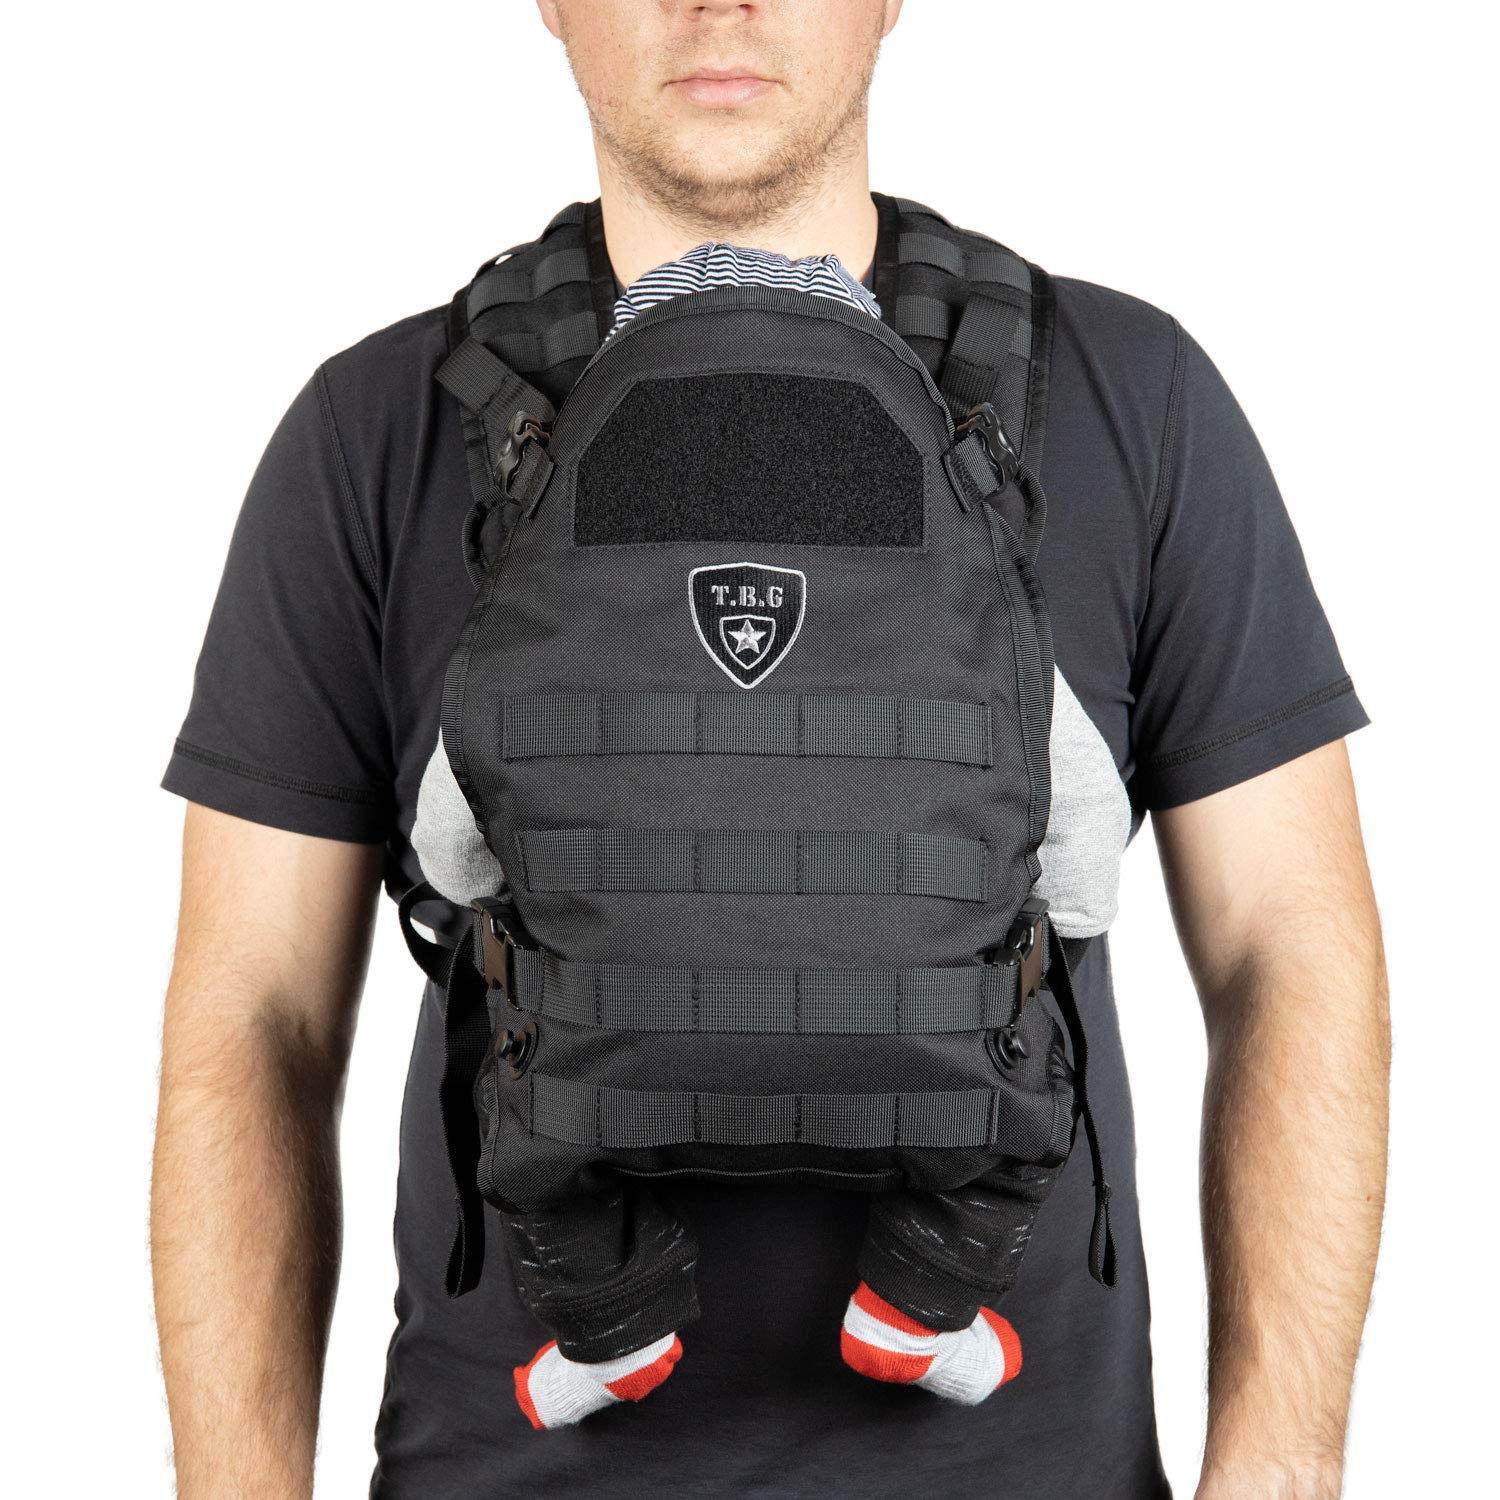 TBG Tactical Baby Carrier (Black)